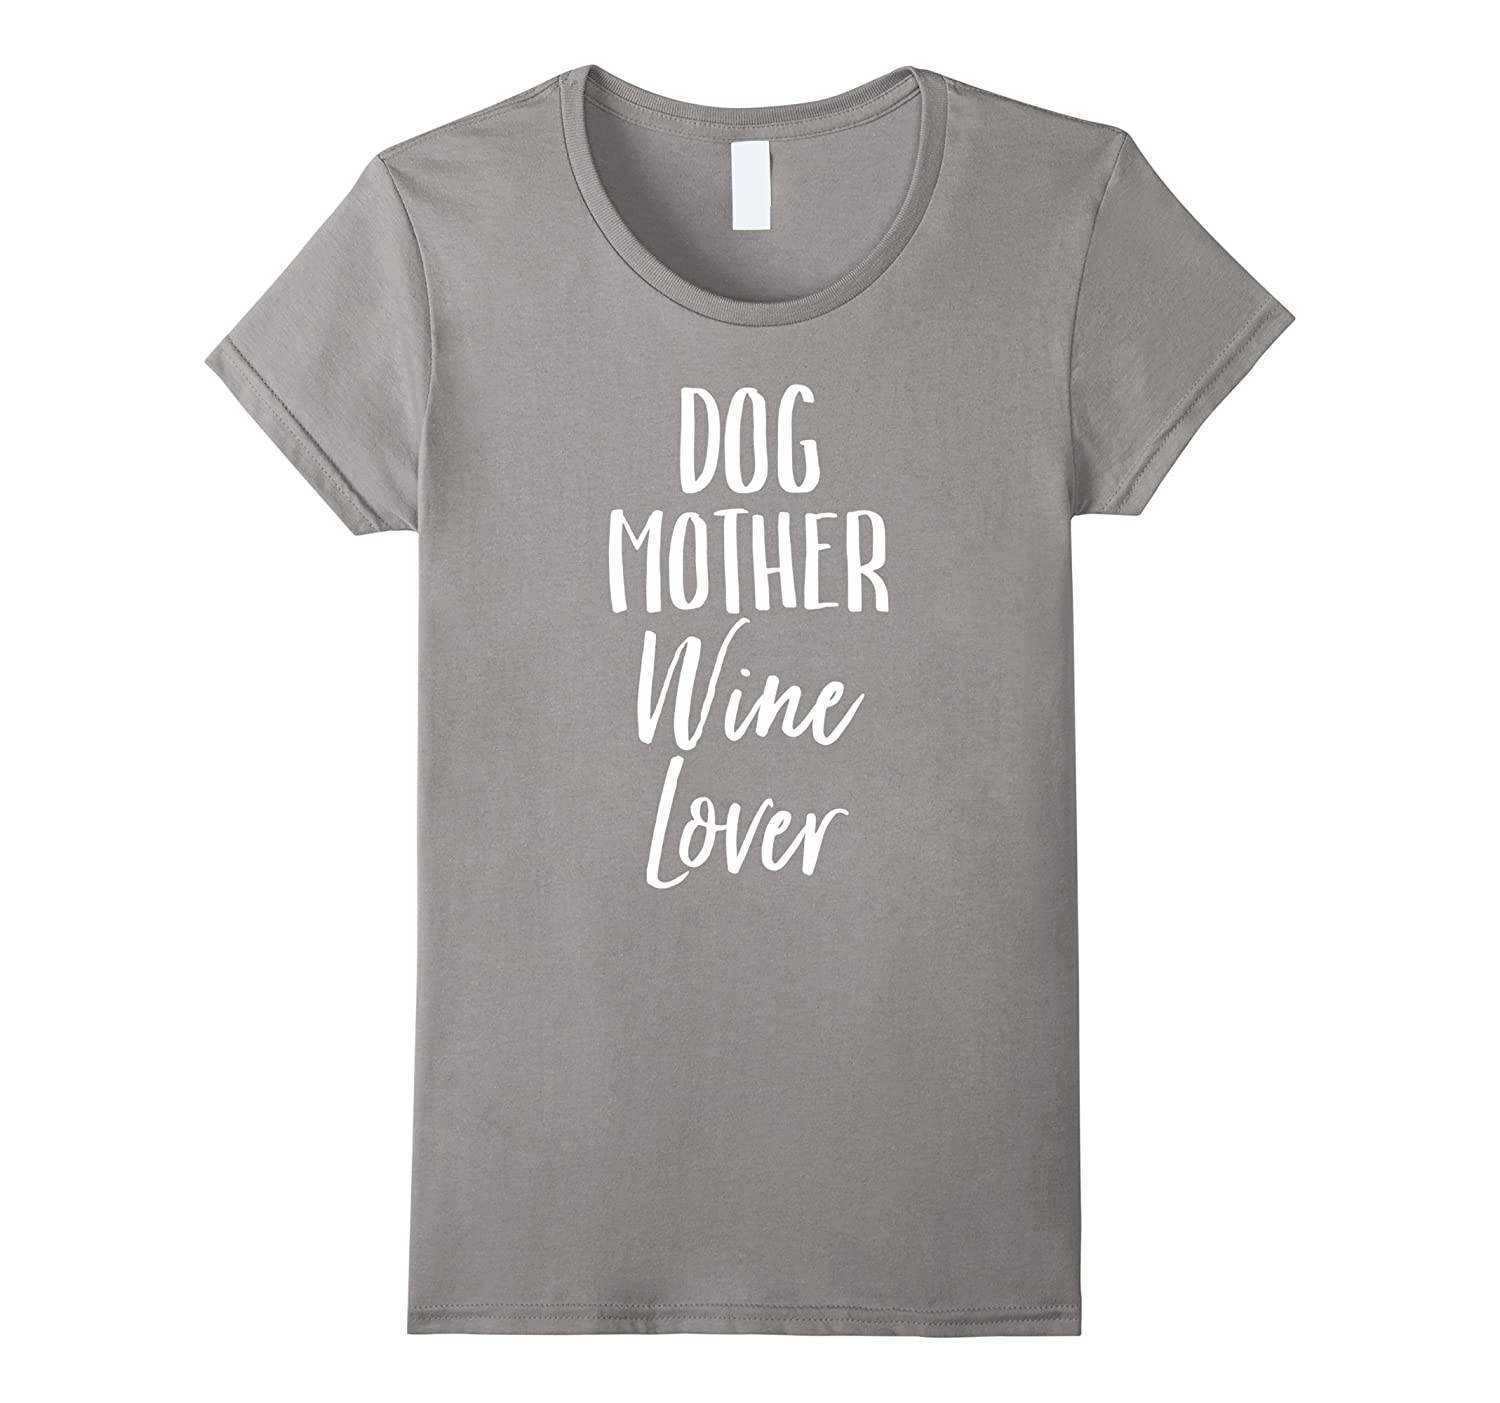 Womens Dog Mother, Wine Lover Vintage Distressed Pet Shirt